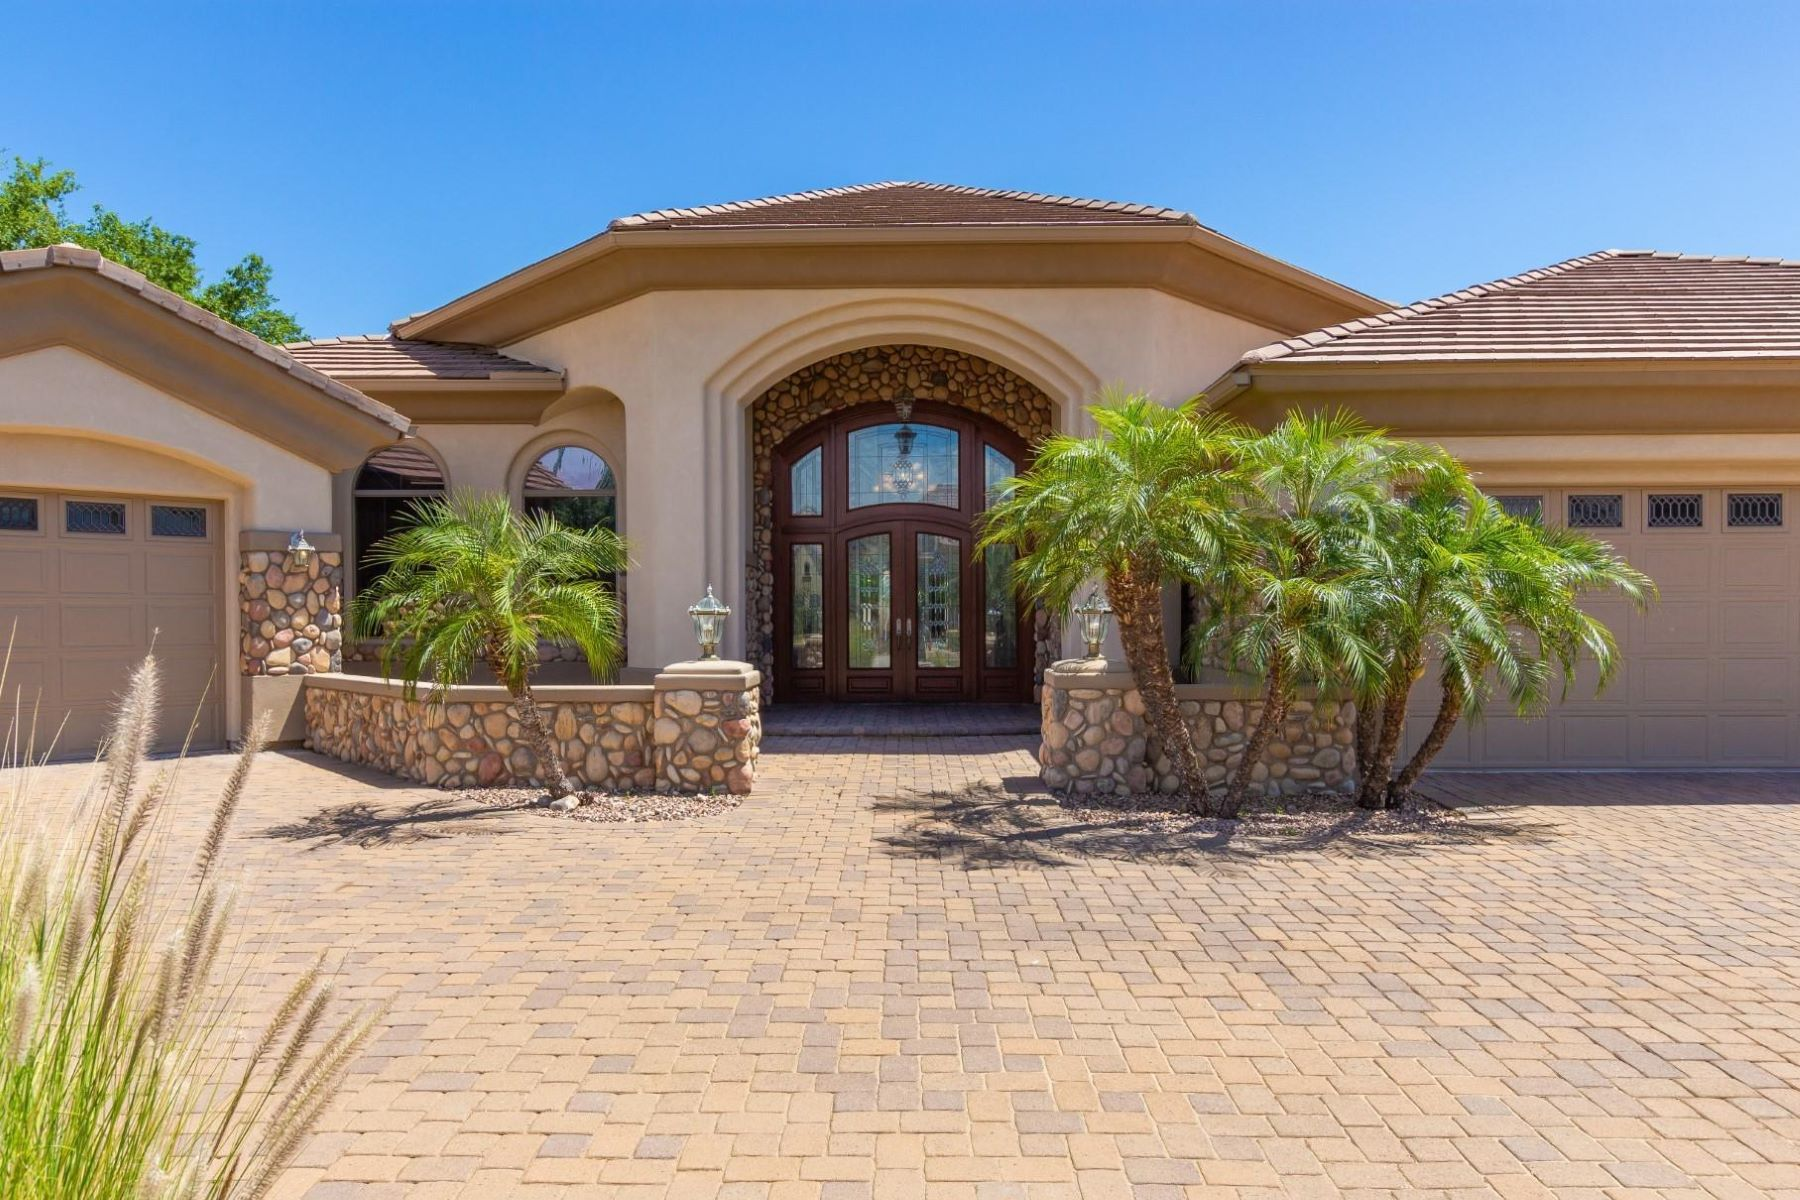 Single Family Homes for Active at Cantera Gates 8313 W Cantera Peoria, Arizona 85383 United States